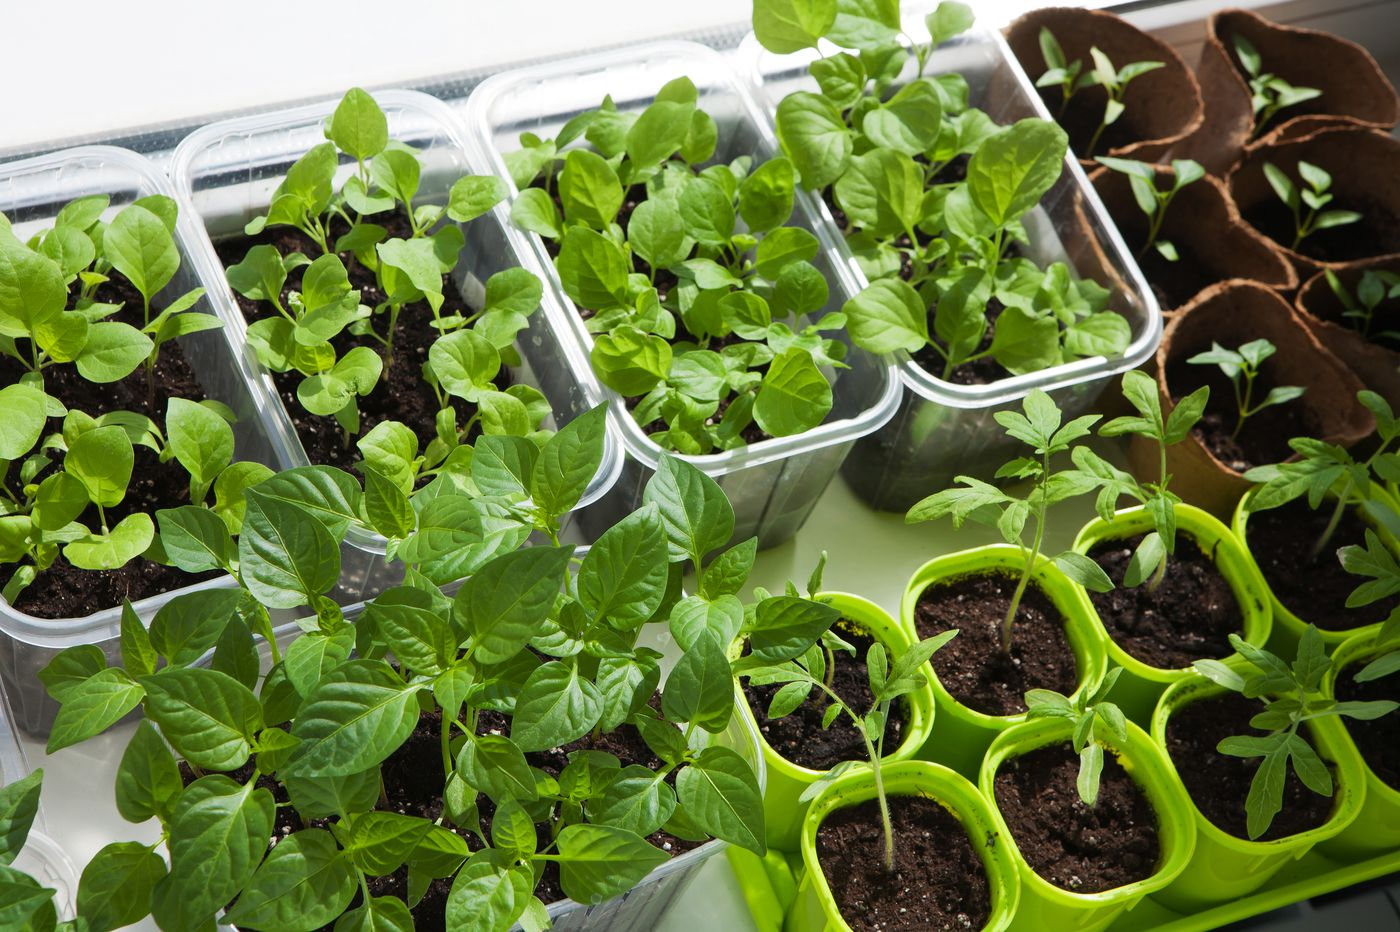 What Vegetables Can You Plant Right Now Indoors And Out During